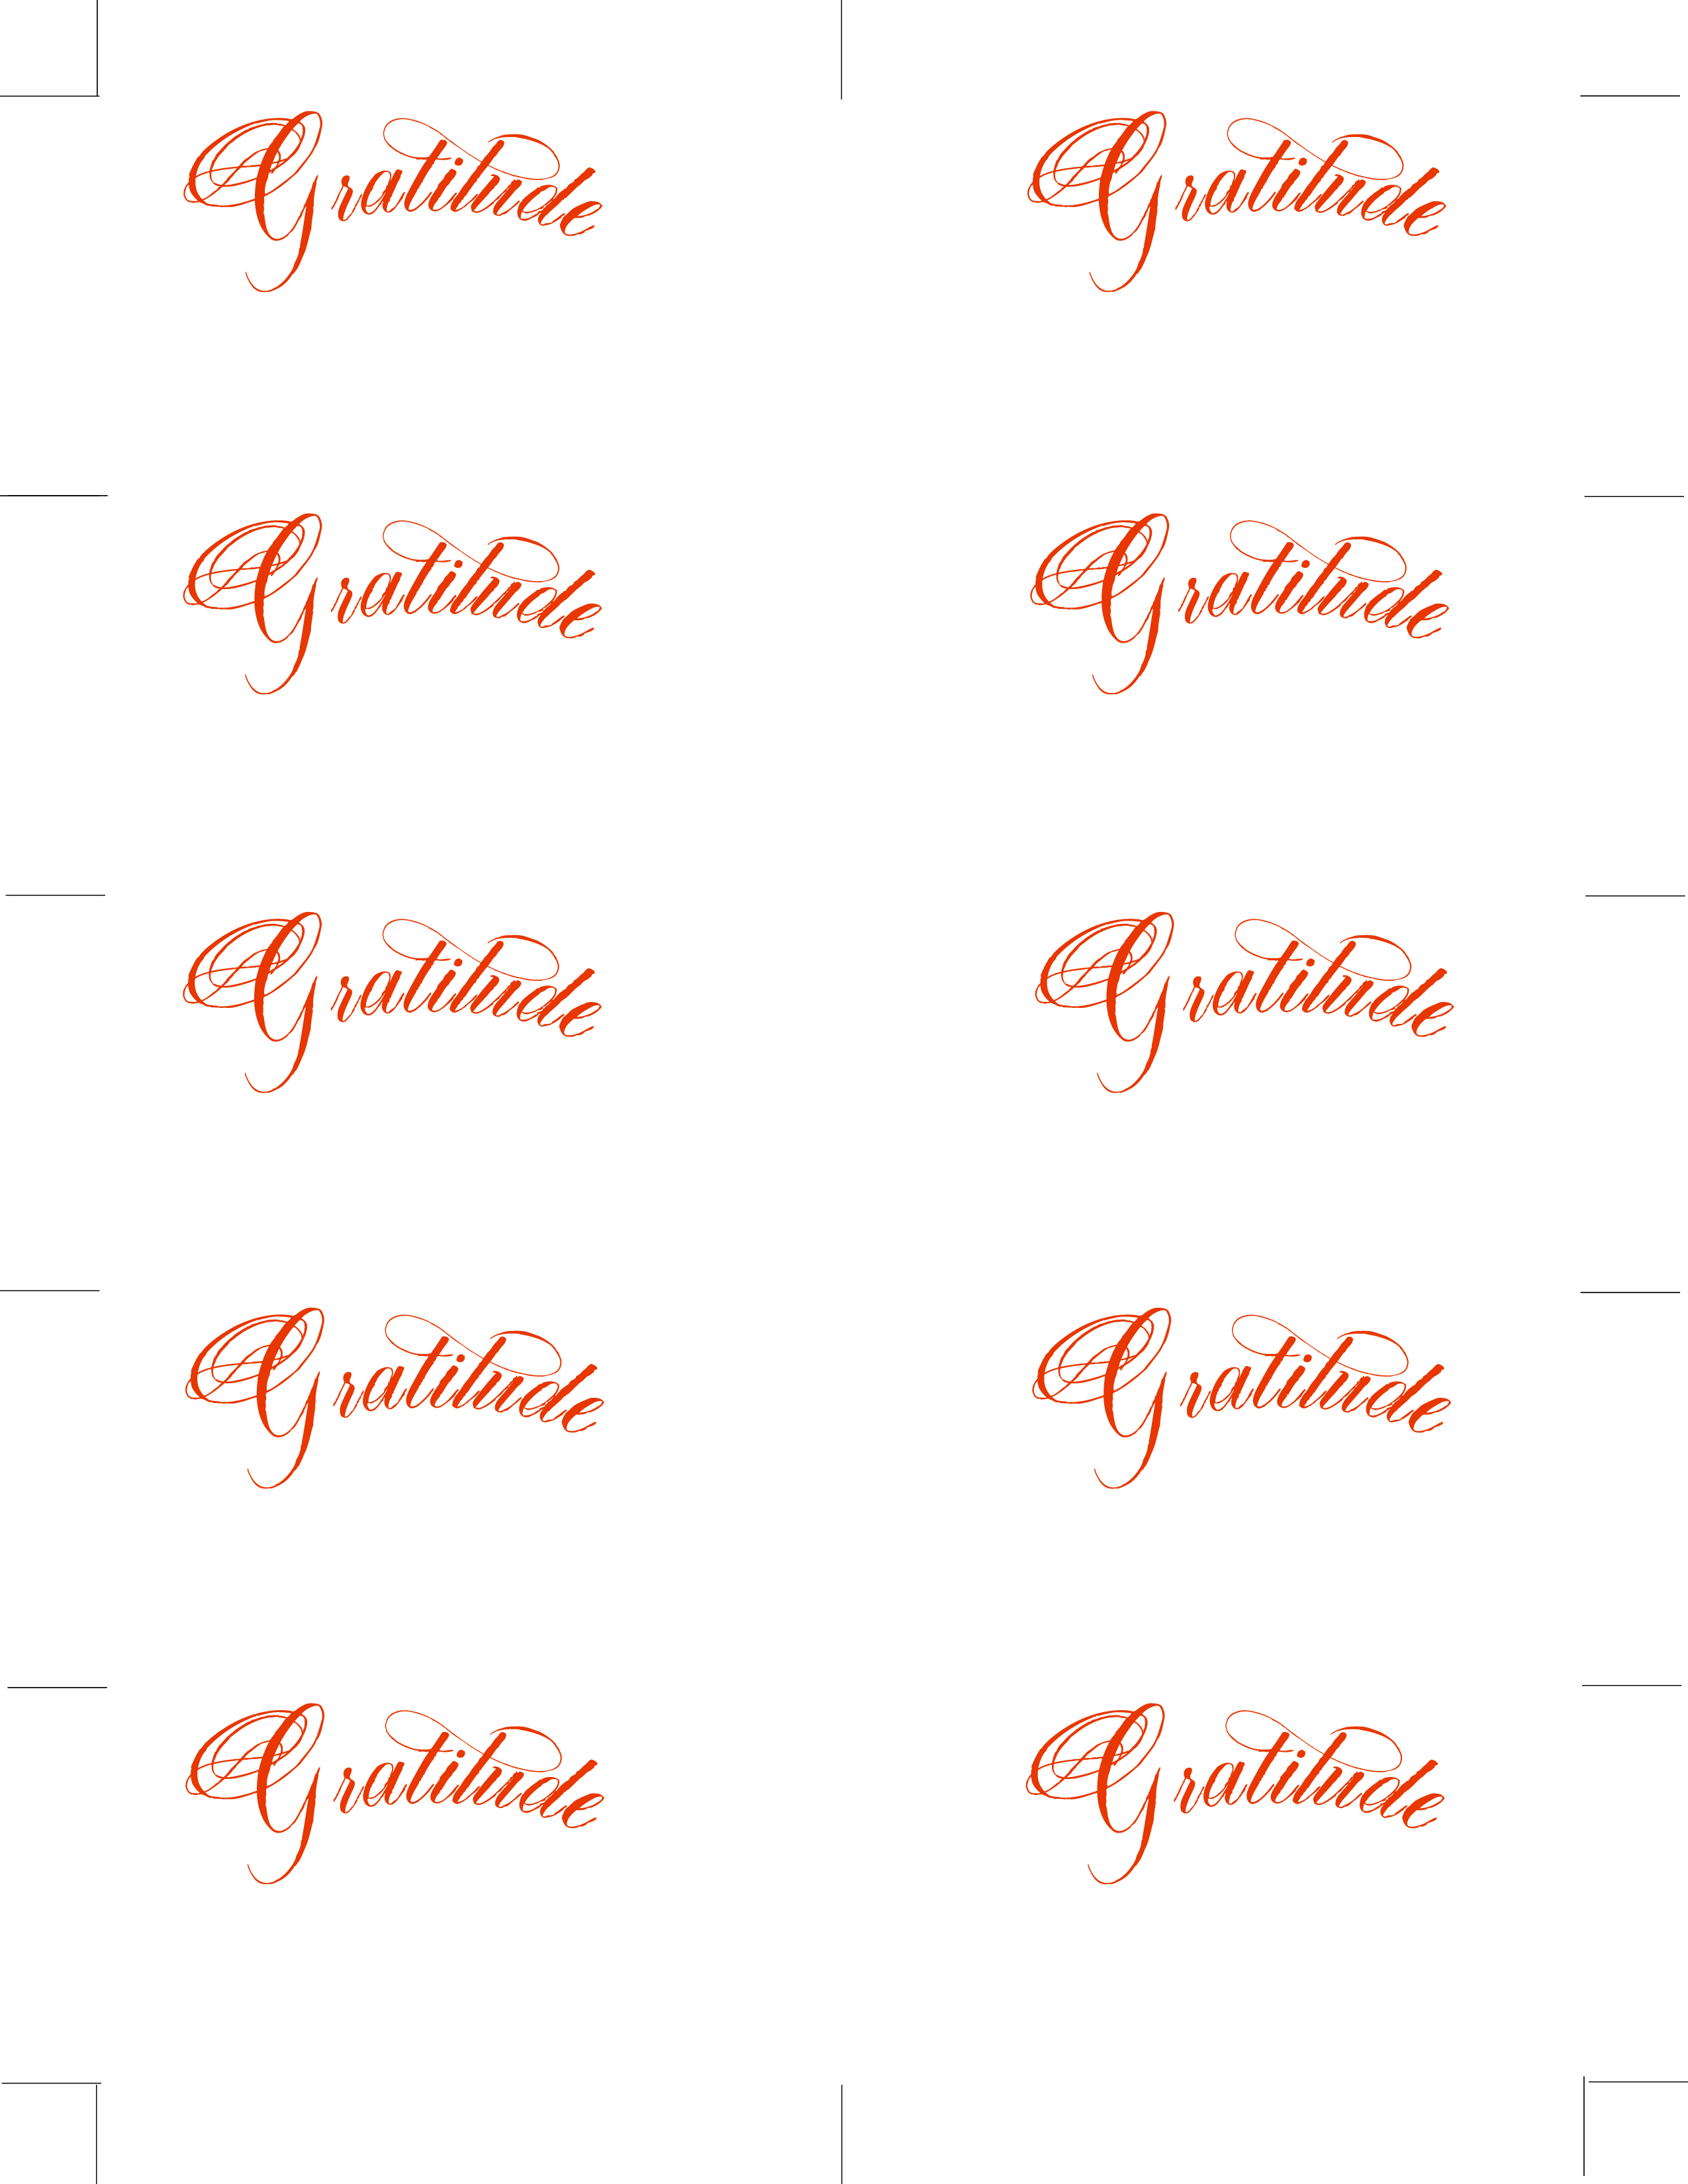 Free Printable Gratitude Place Cards | Lettering Art Studio - Free Printable Place Cards